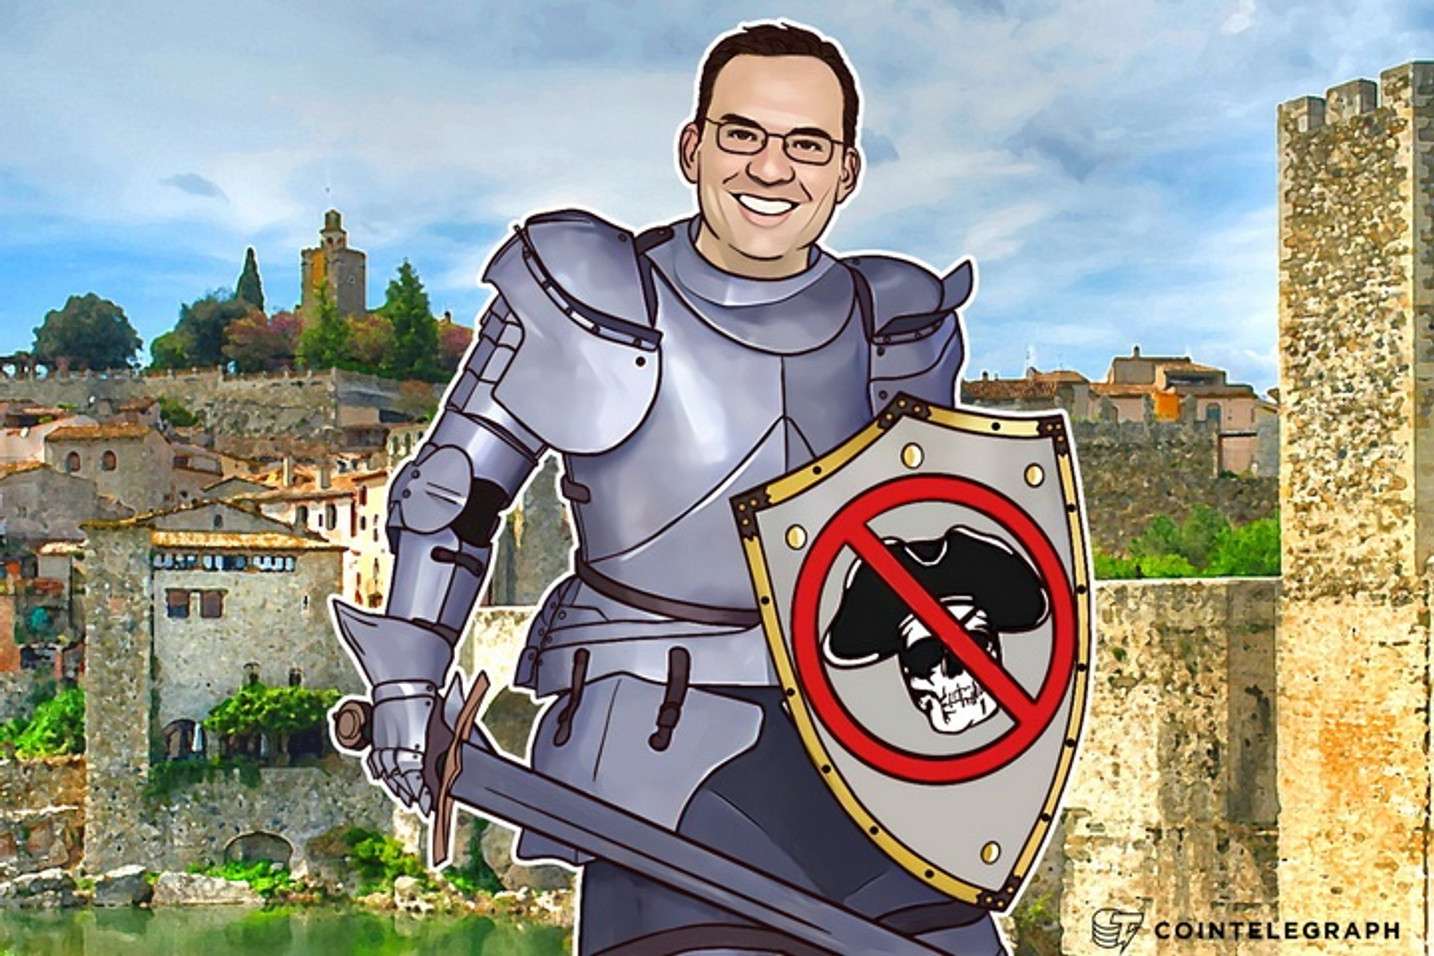 Blockchain Anti-Piracy Startup to Track Stolen Content Globally